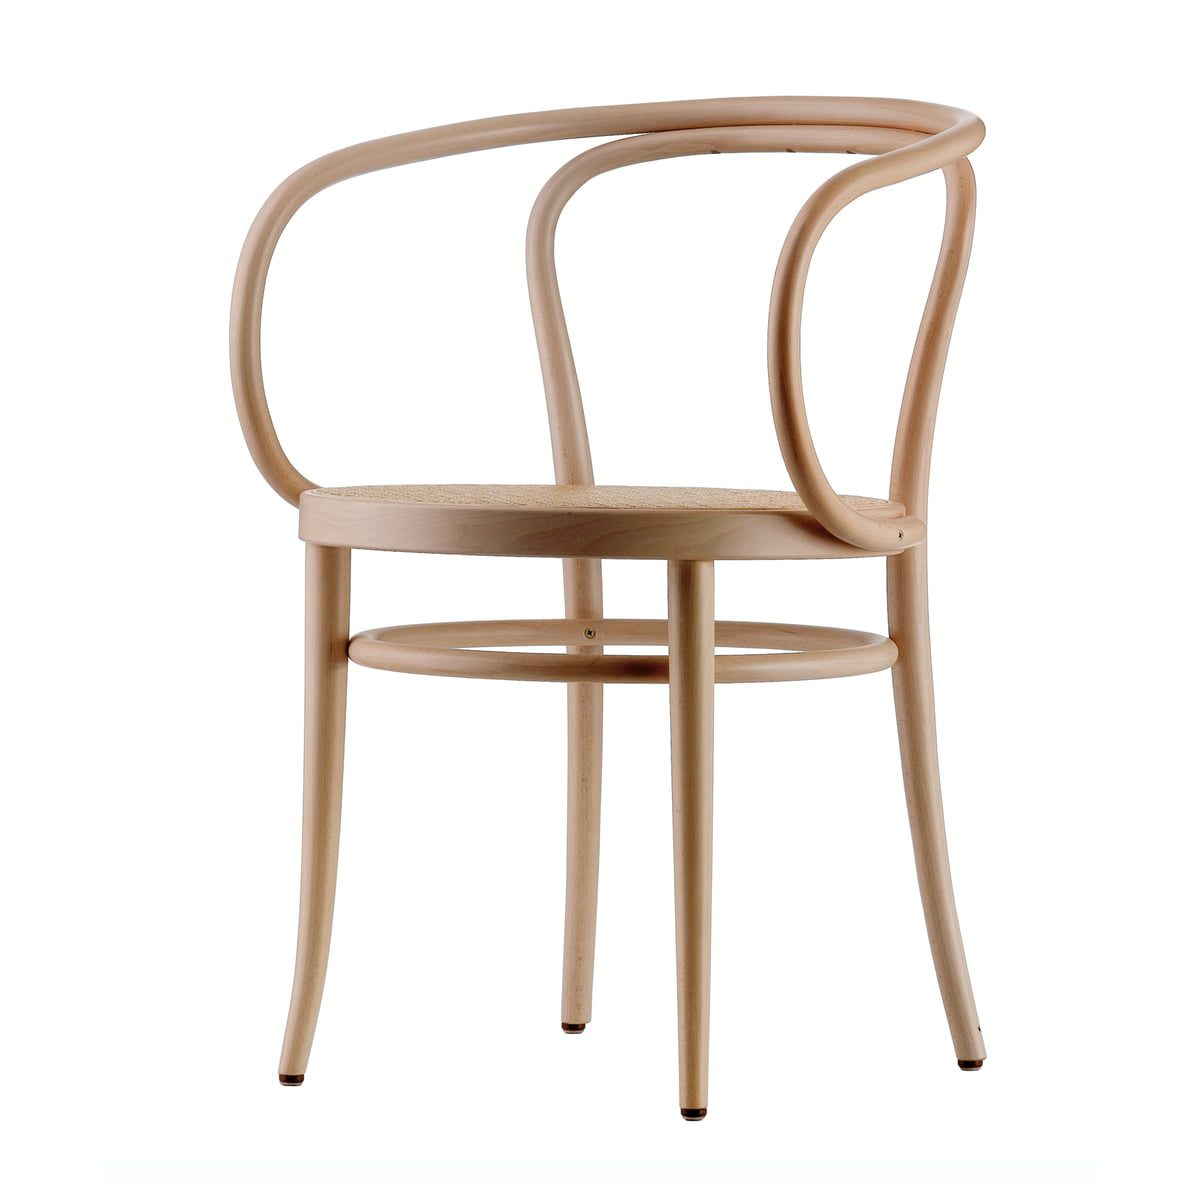 The 209 Bentwood Chair By Thonet Made From Black Stained Beech Tp 17 With